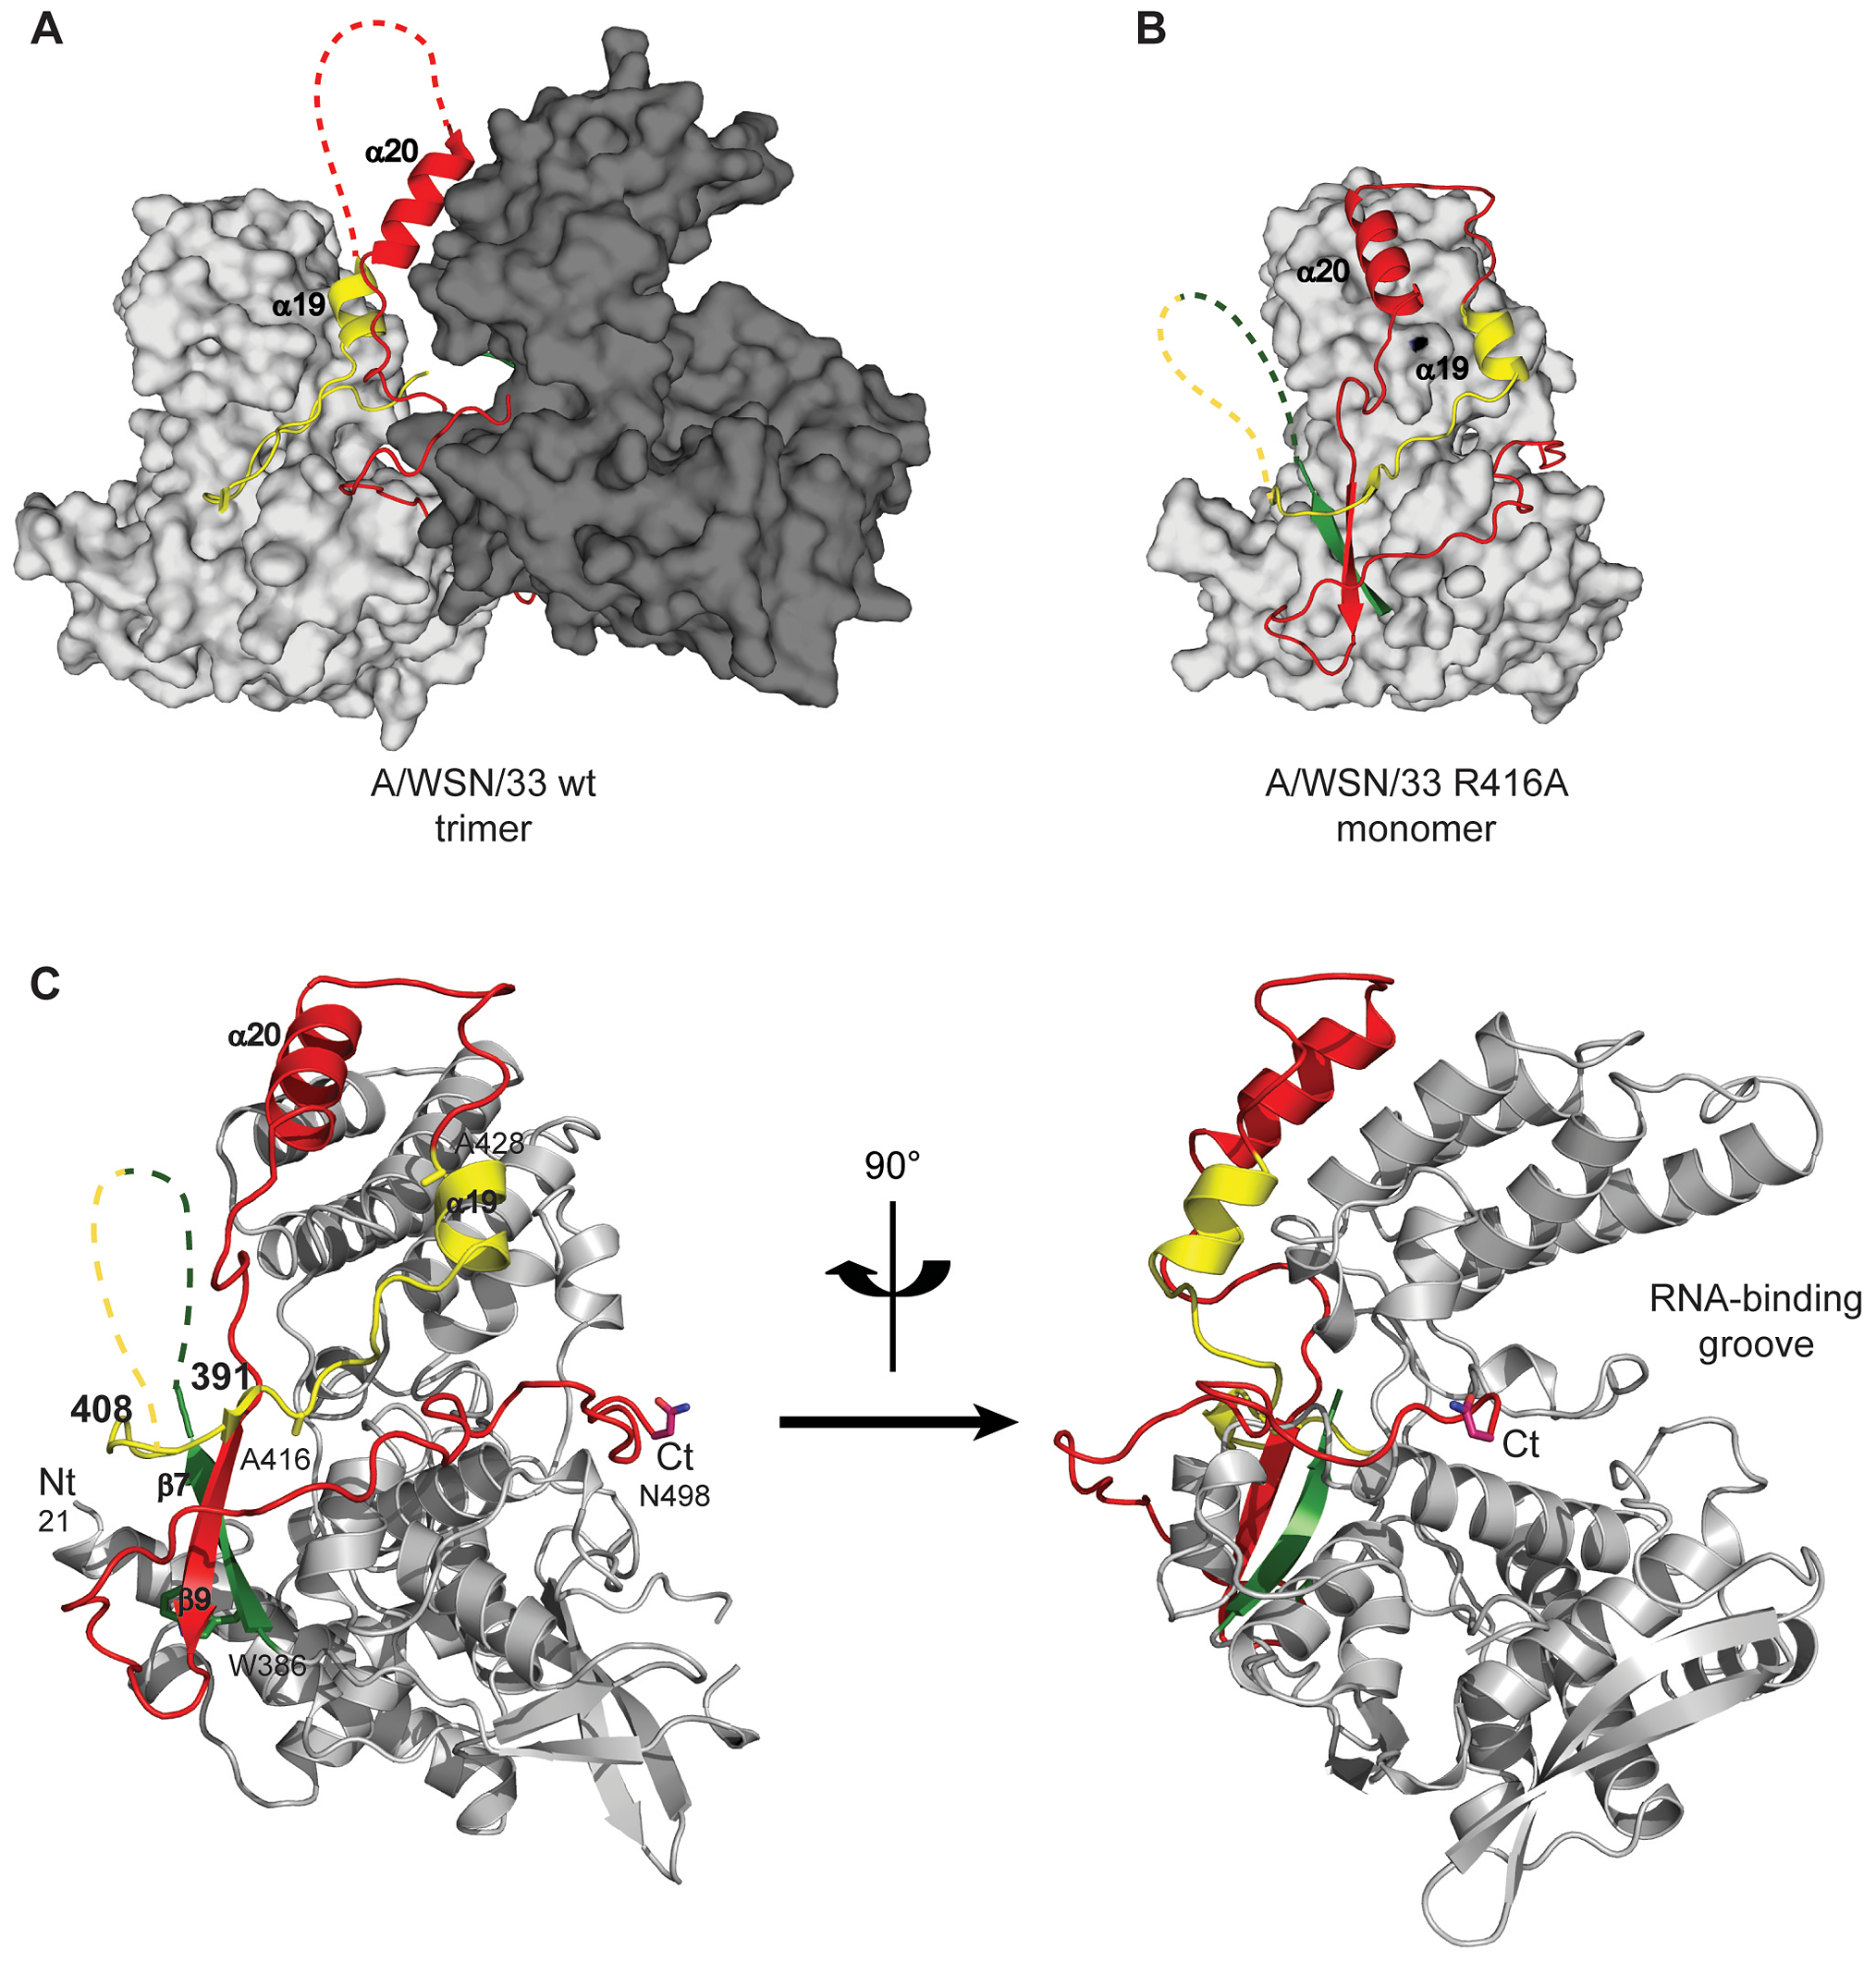 Structure of monomeric NP and comparison with the trimer structure.